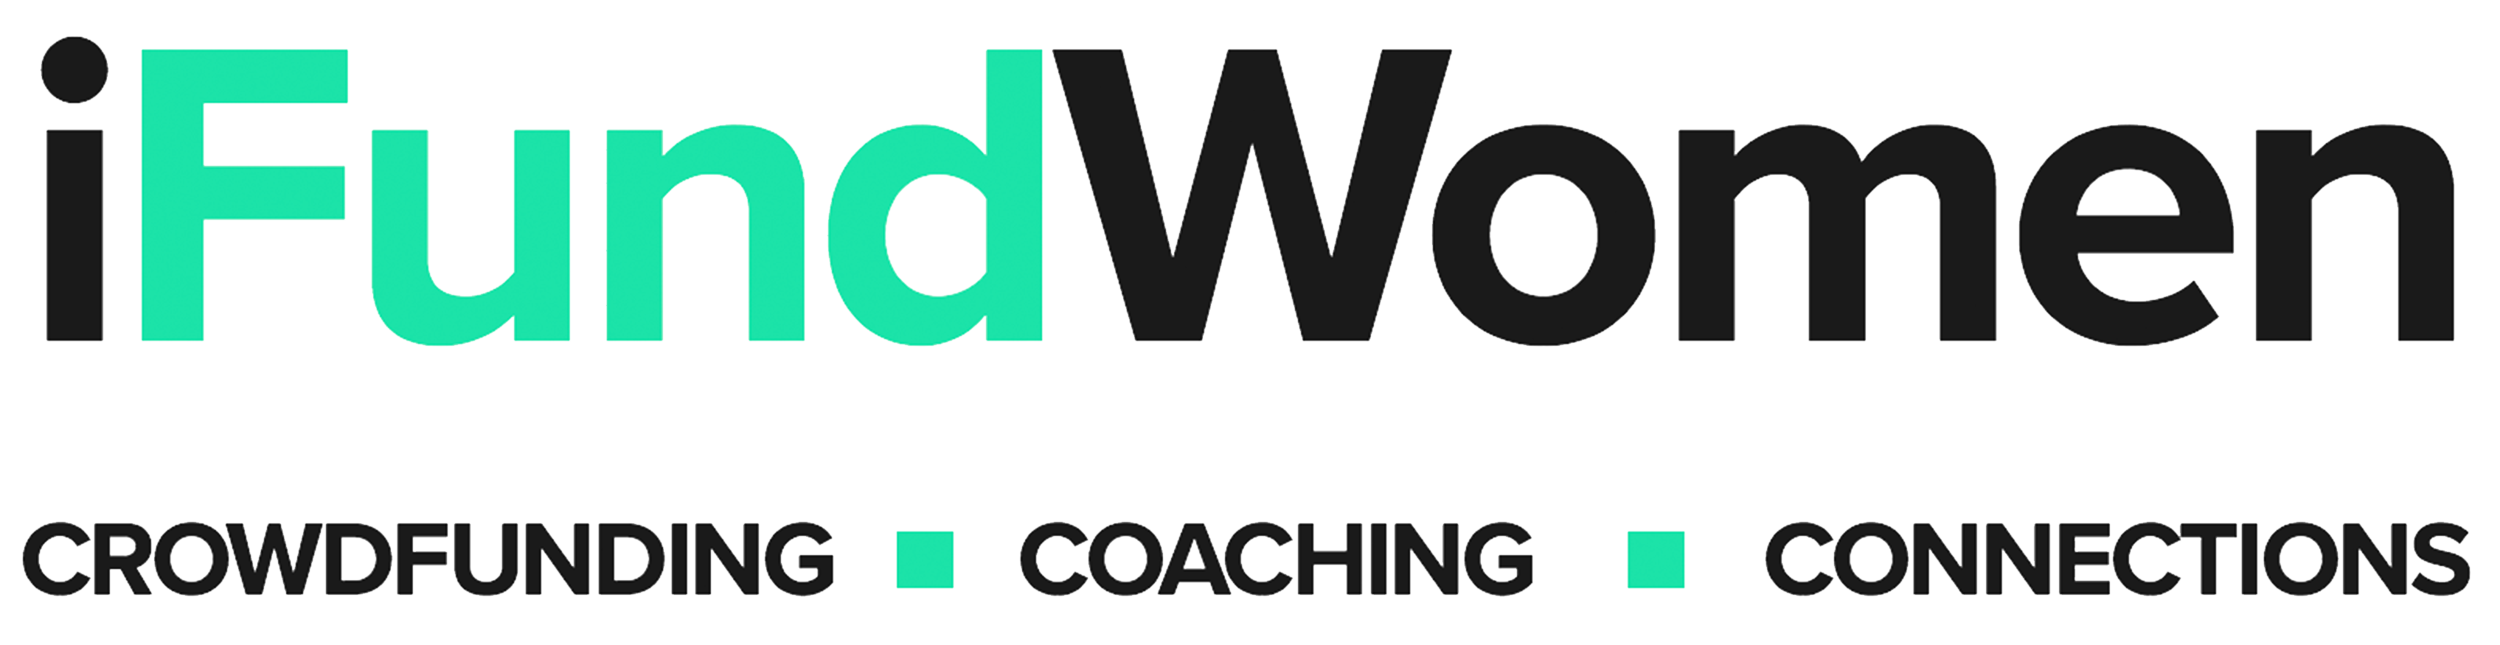 iFundWomen Crowdfunding Coaching Connections (2).png